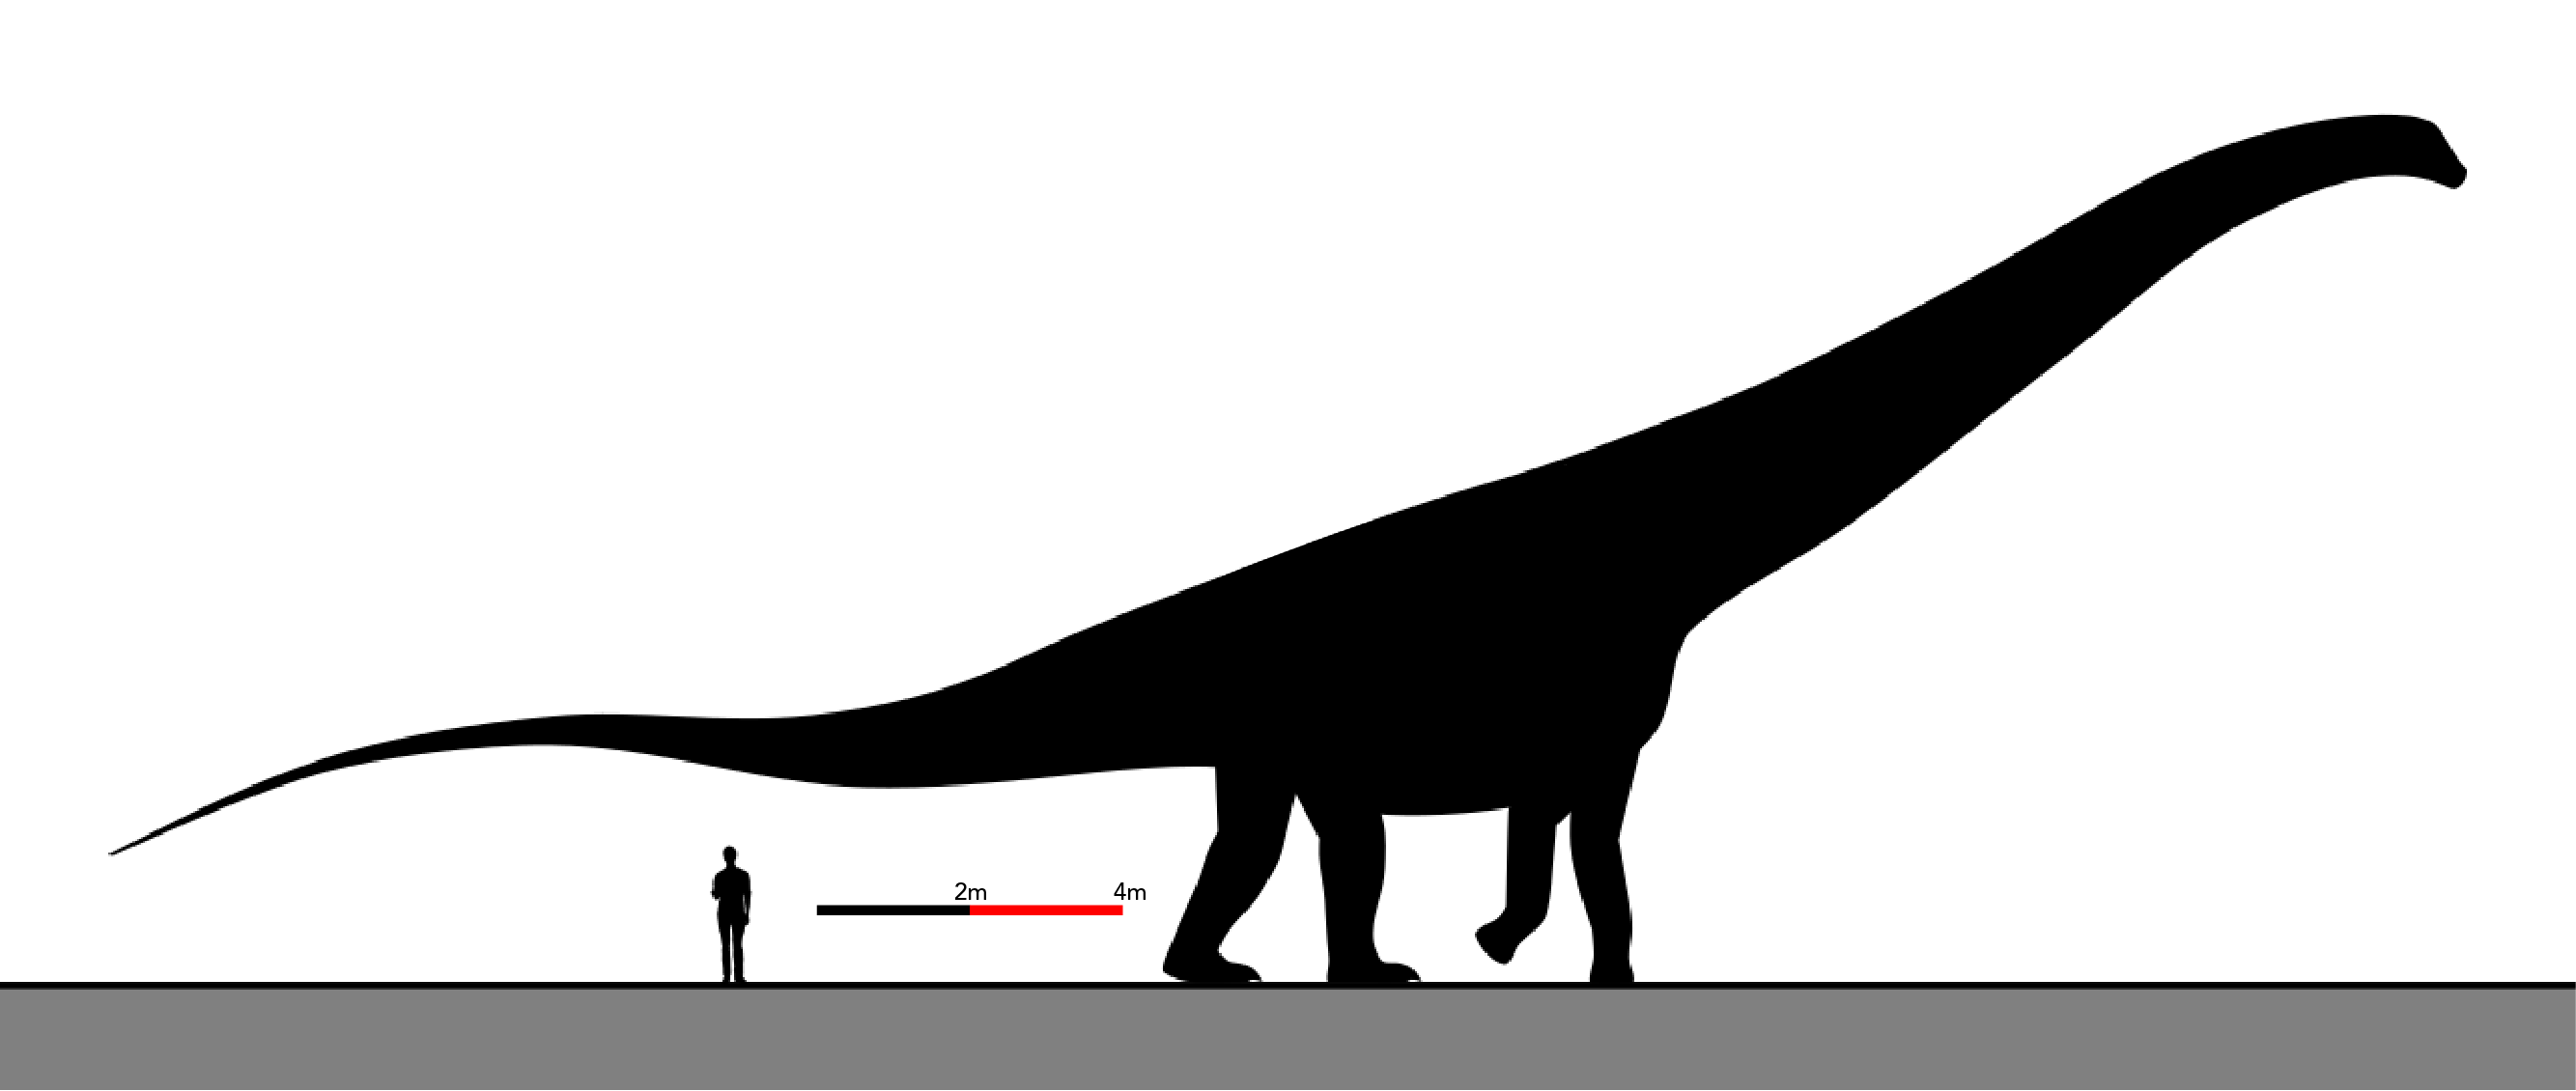 Graphic showing the relative sizes of Argentinosaurus huinculensis and a human